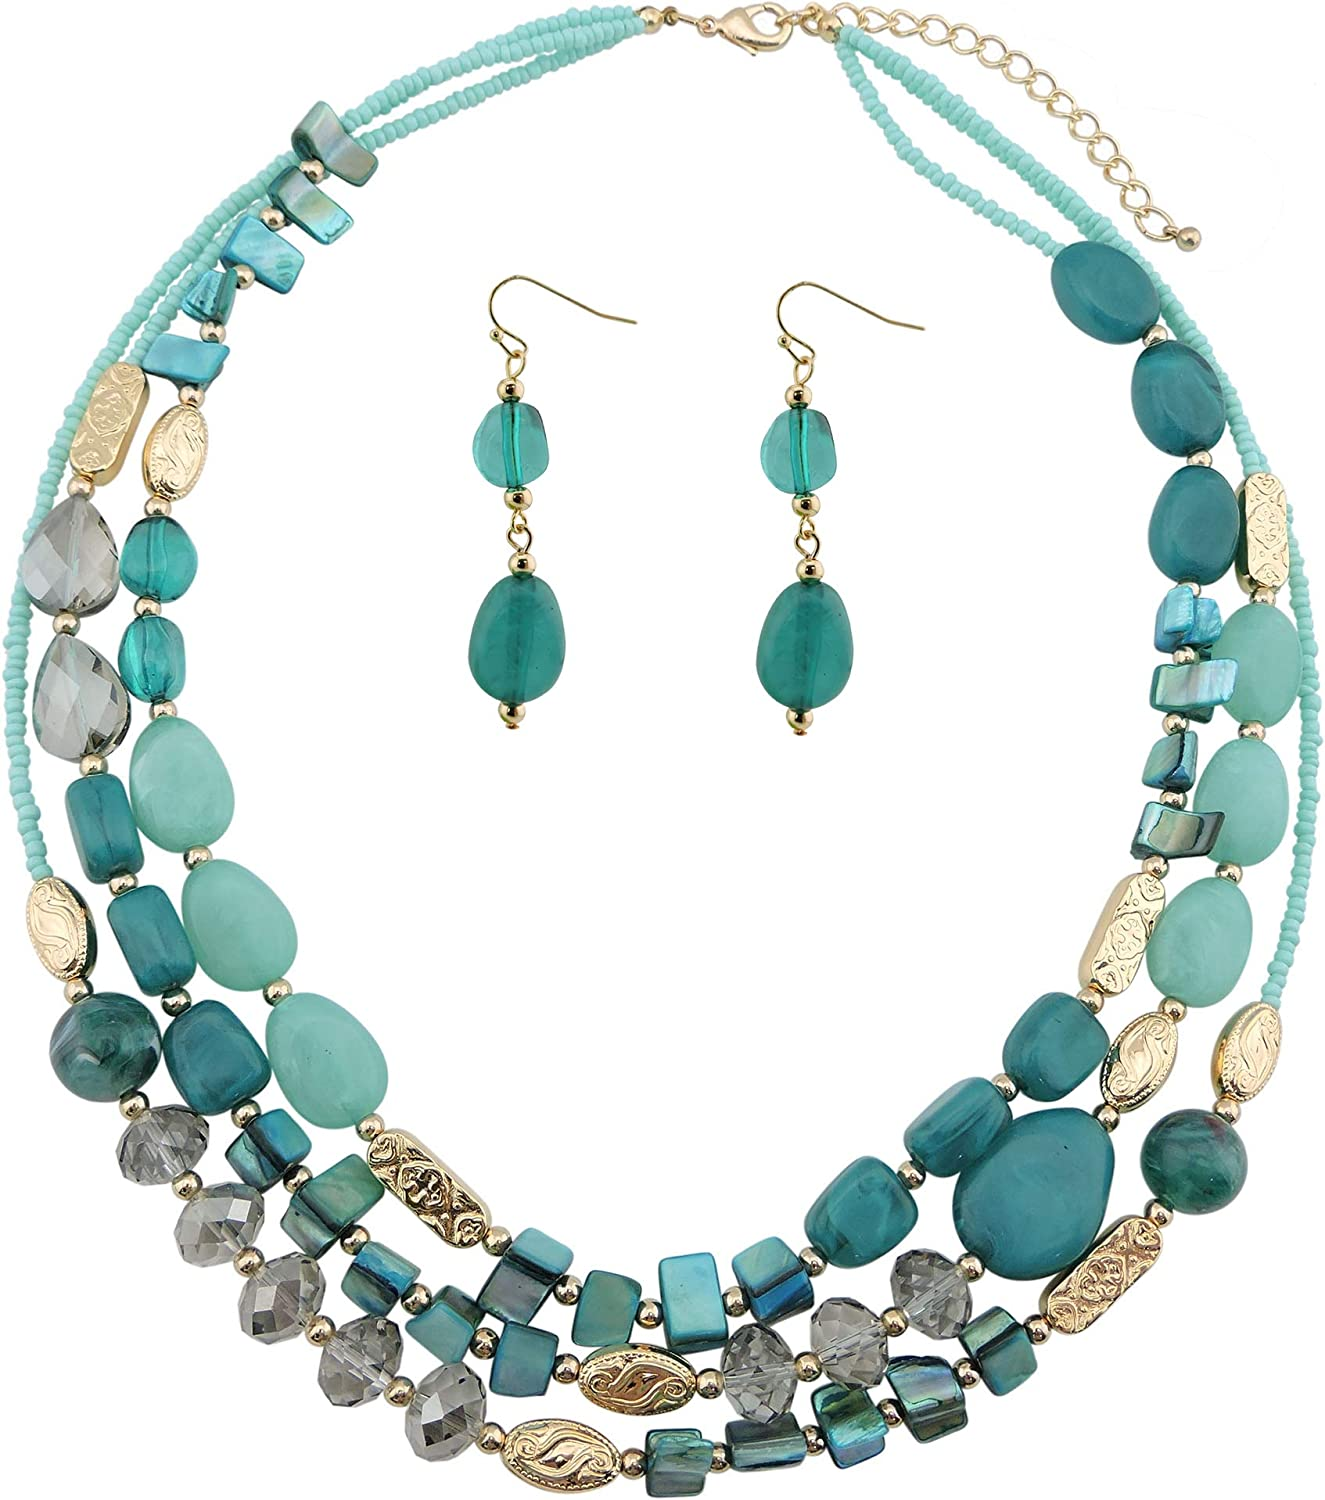 Coiris 3 Multi Layer Shell Glass Beaded Fashion Necklace for Women 21